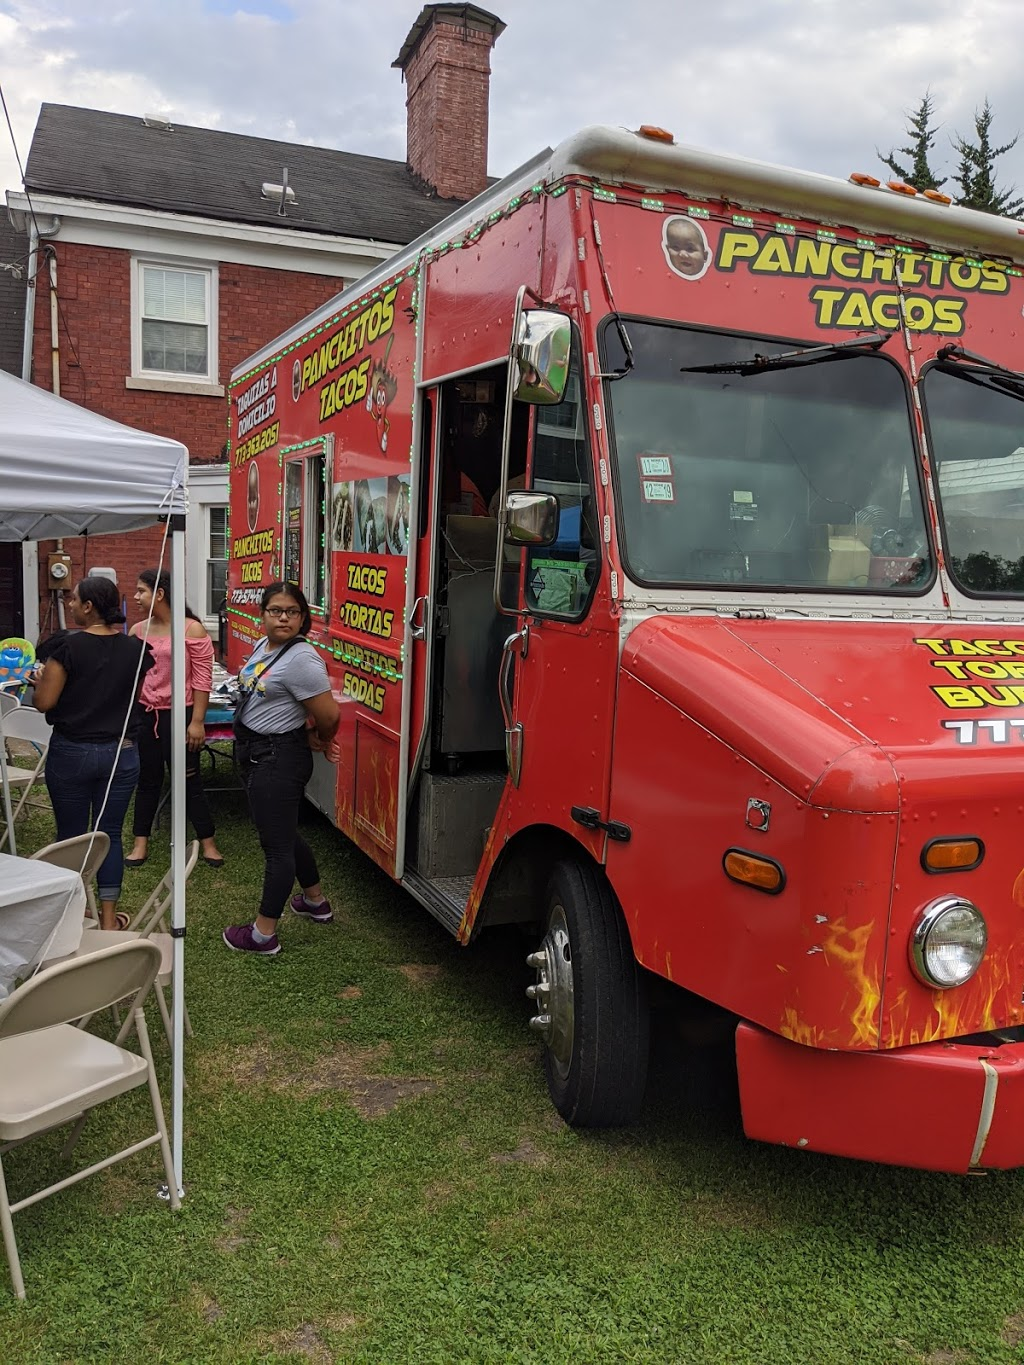 Panchitos Tacos Truck - restaurant  | Photo 3 of 10 | Address: 4900 W Gladys Ave, Chicago, IL 60644, USA | Phone: (773) 574-5964